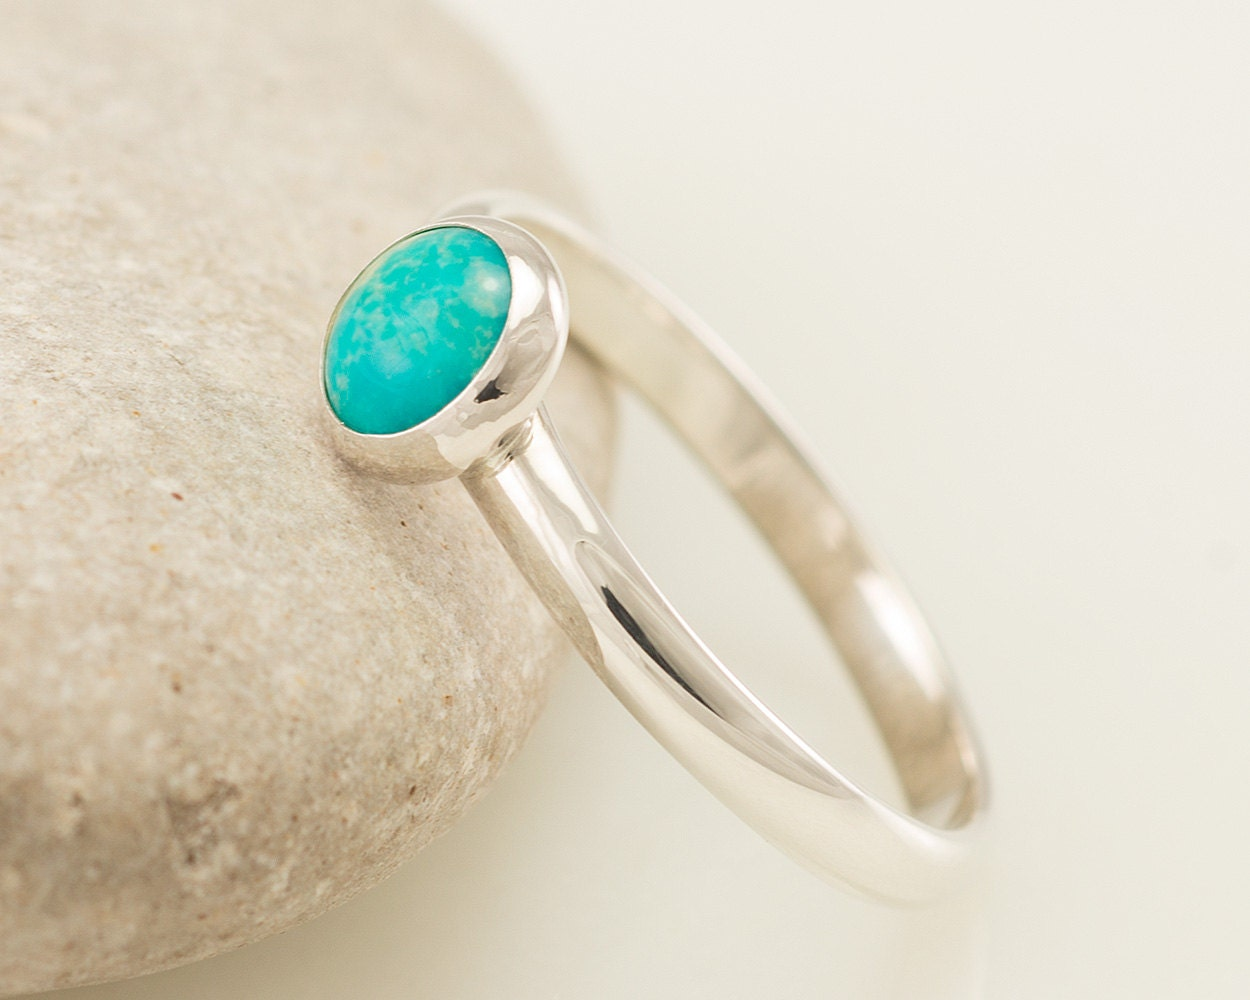 and product page turquoise stone silver band beauty sleeping com qvc sterling rings ring